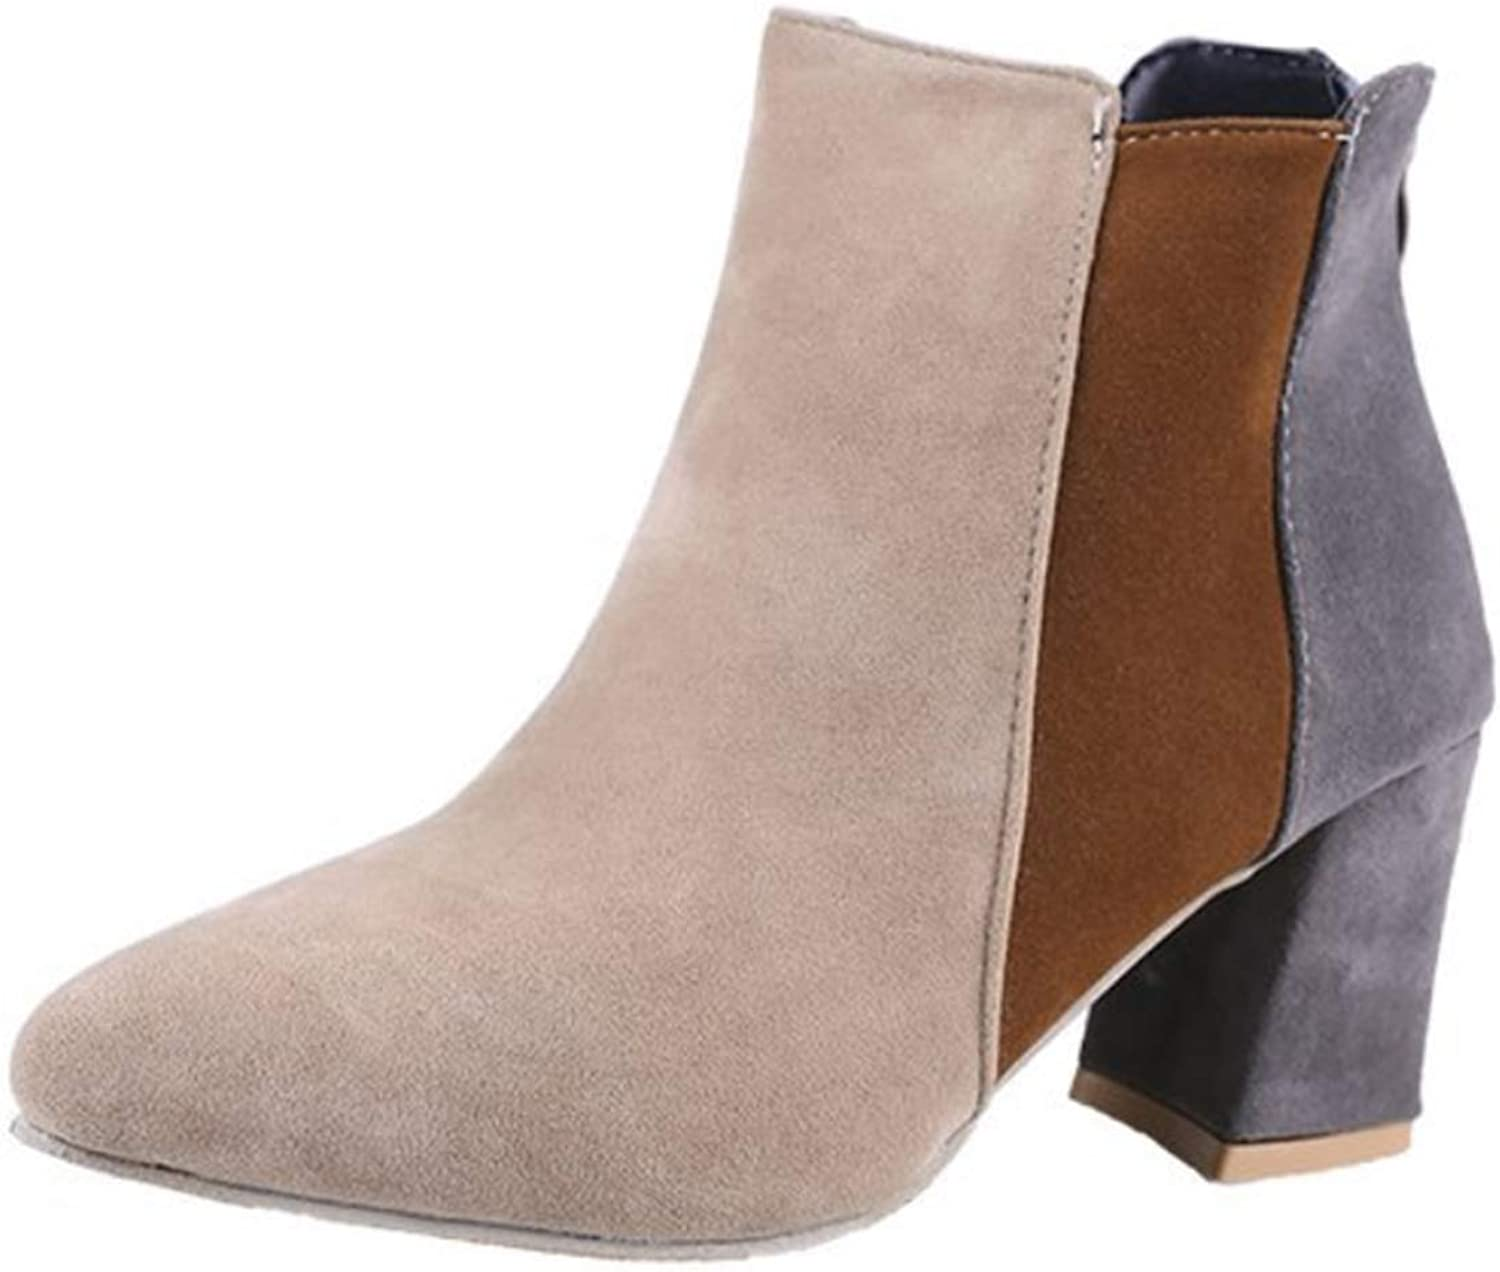 Women Martin boots suede thick with round head boots, Back Zipper slip, Europe and the United States autumn and winter new ankle boots,Beige,36EU